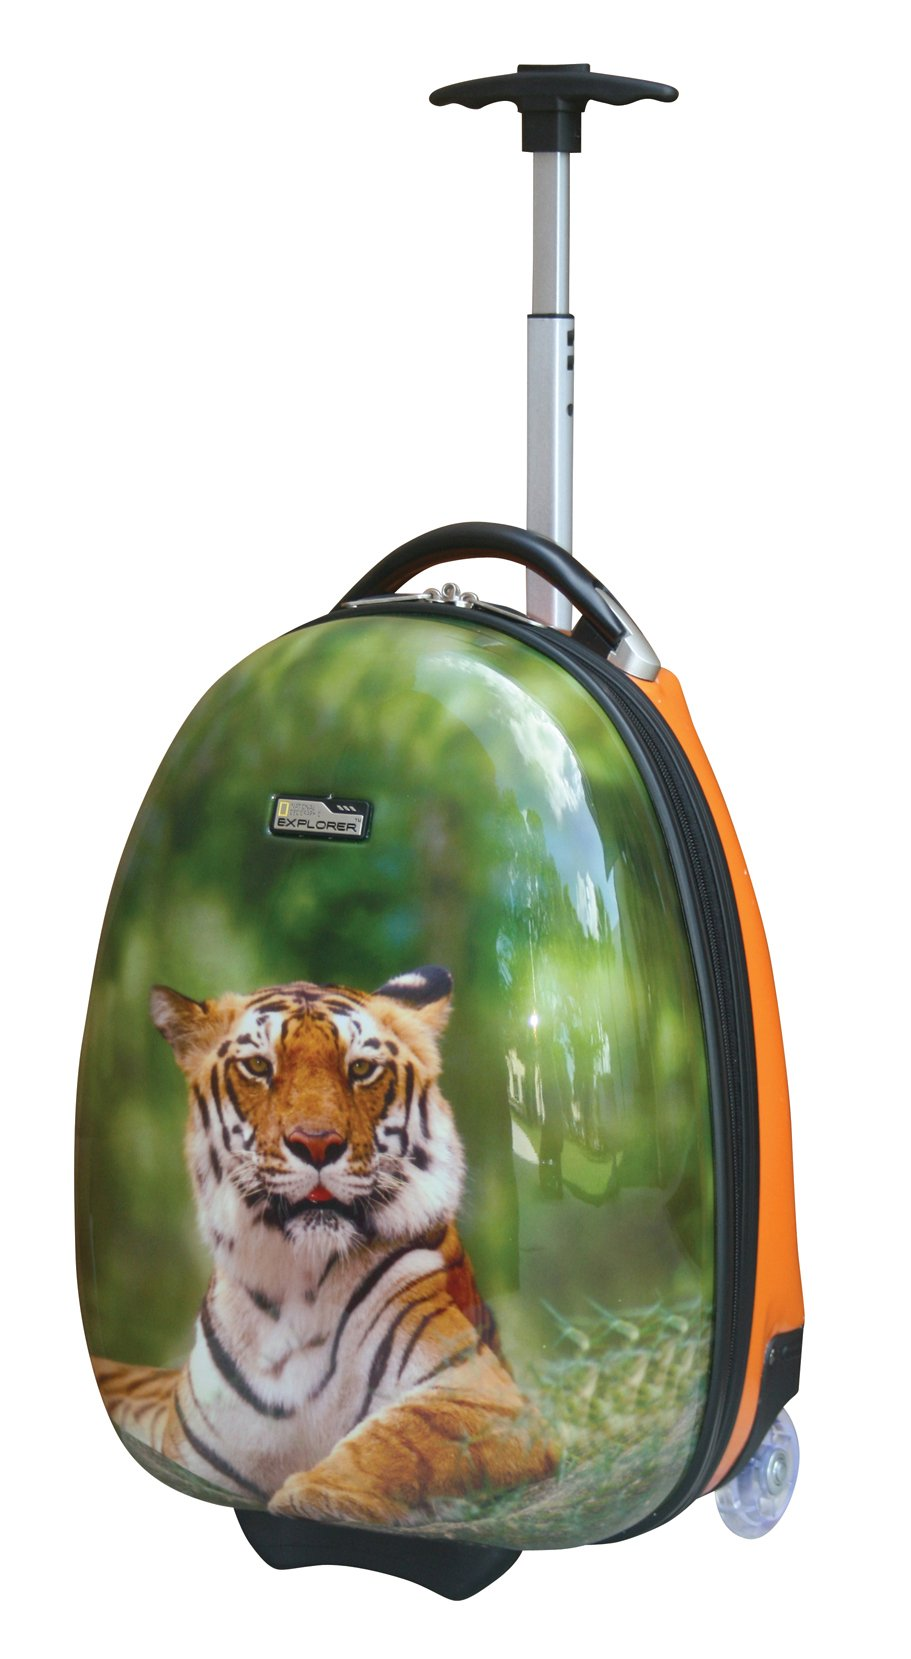 National Geographic Kid's 16 Inch Rolling Luggage, Tiger, One Size by National Geographic